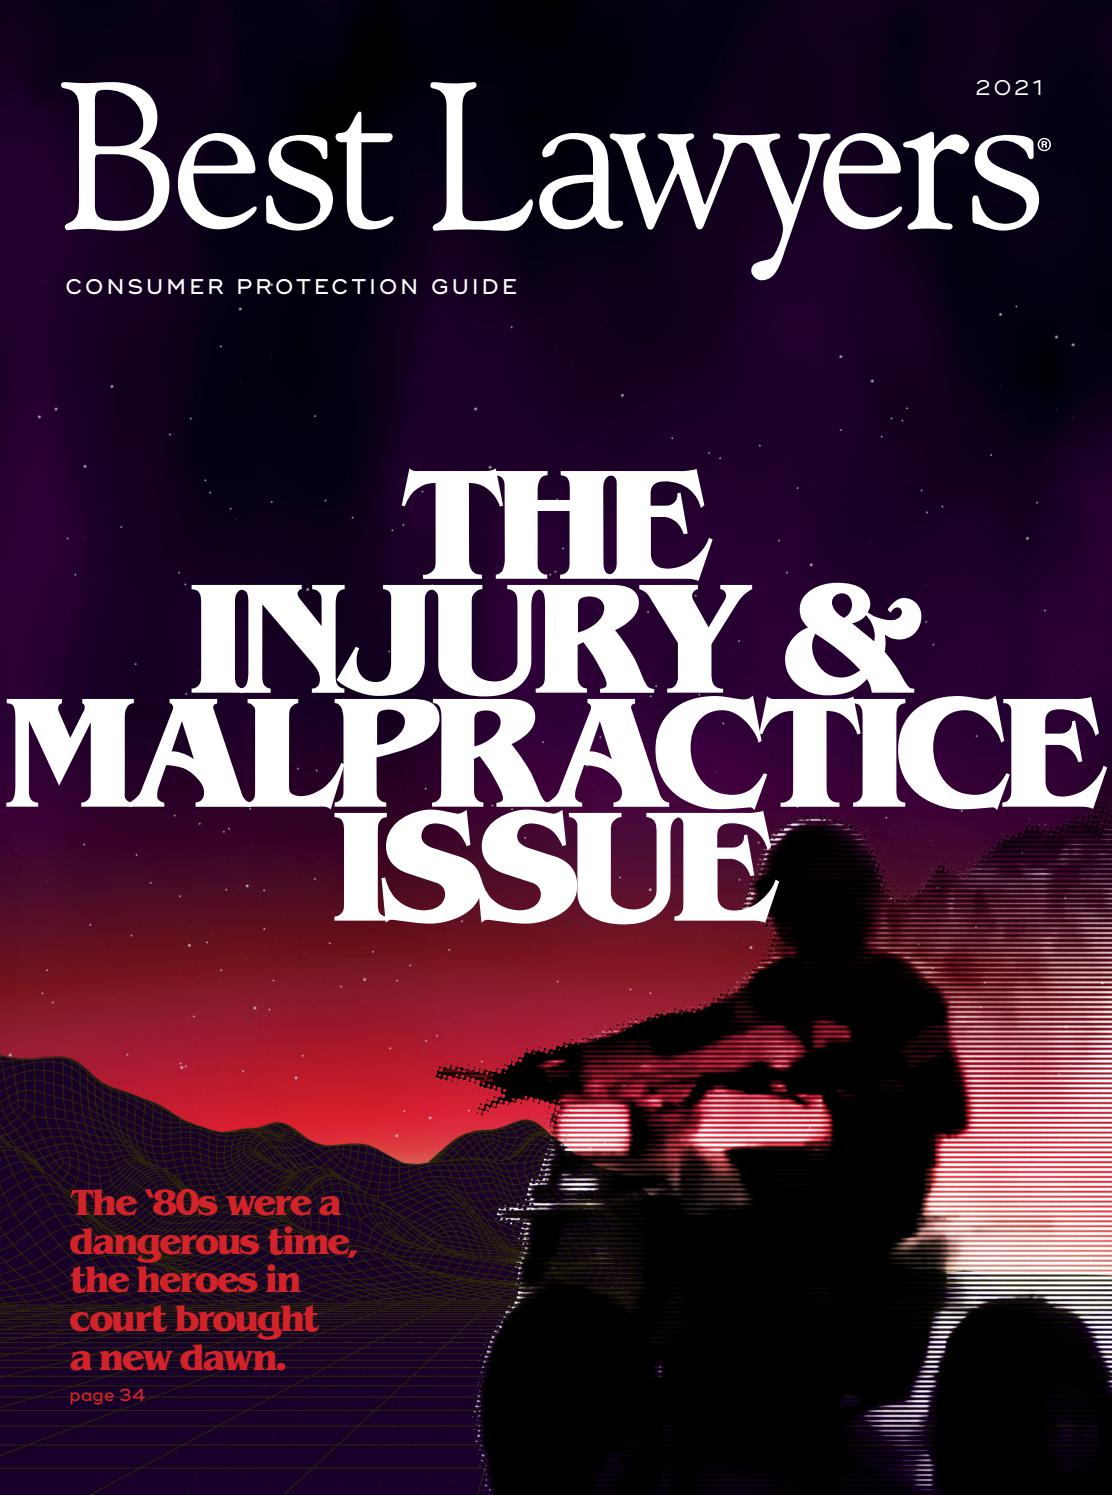 James Hornsby A Christmas Carol 2021 Best Lawyers The Injury Malpractice Issue 2021 By Best Lawyers Issuu